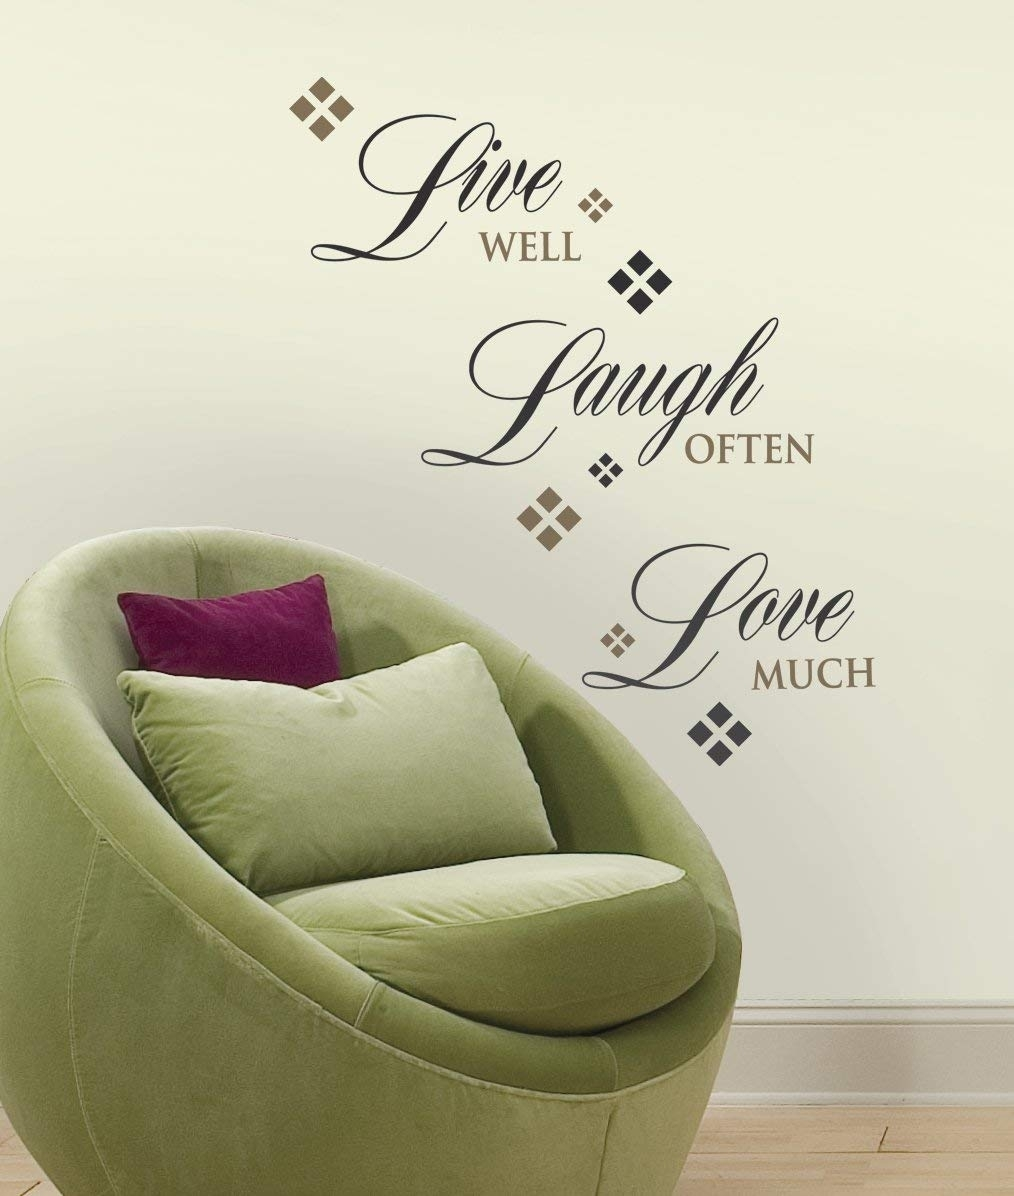 Roommates Rmk1396Scs Live, Love, Laugh Peel & Stick Wall Decals, 22 Intended For Stick On Wall Art (View 13 of 20)